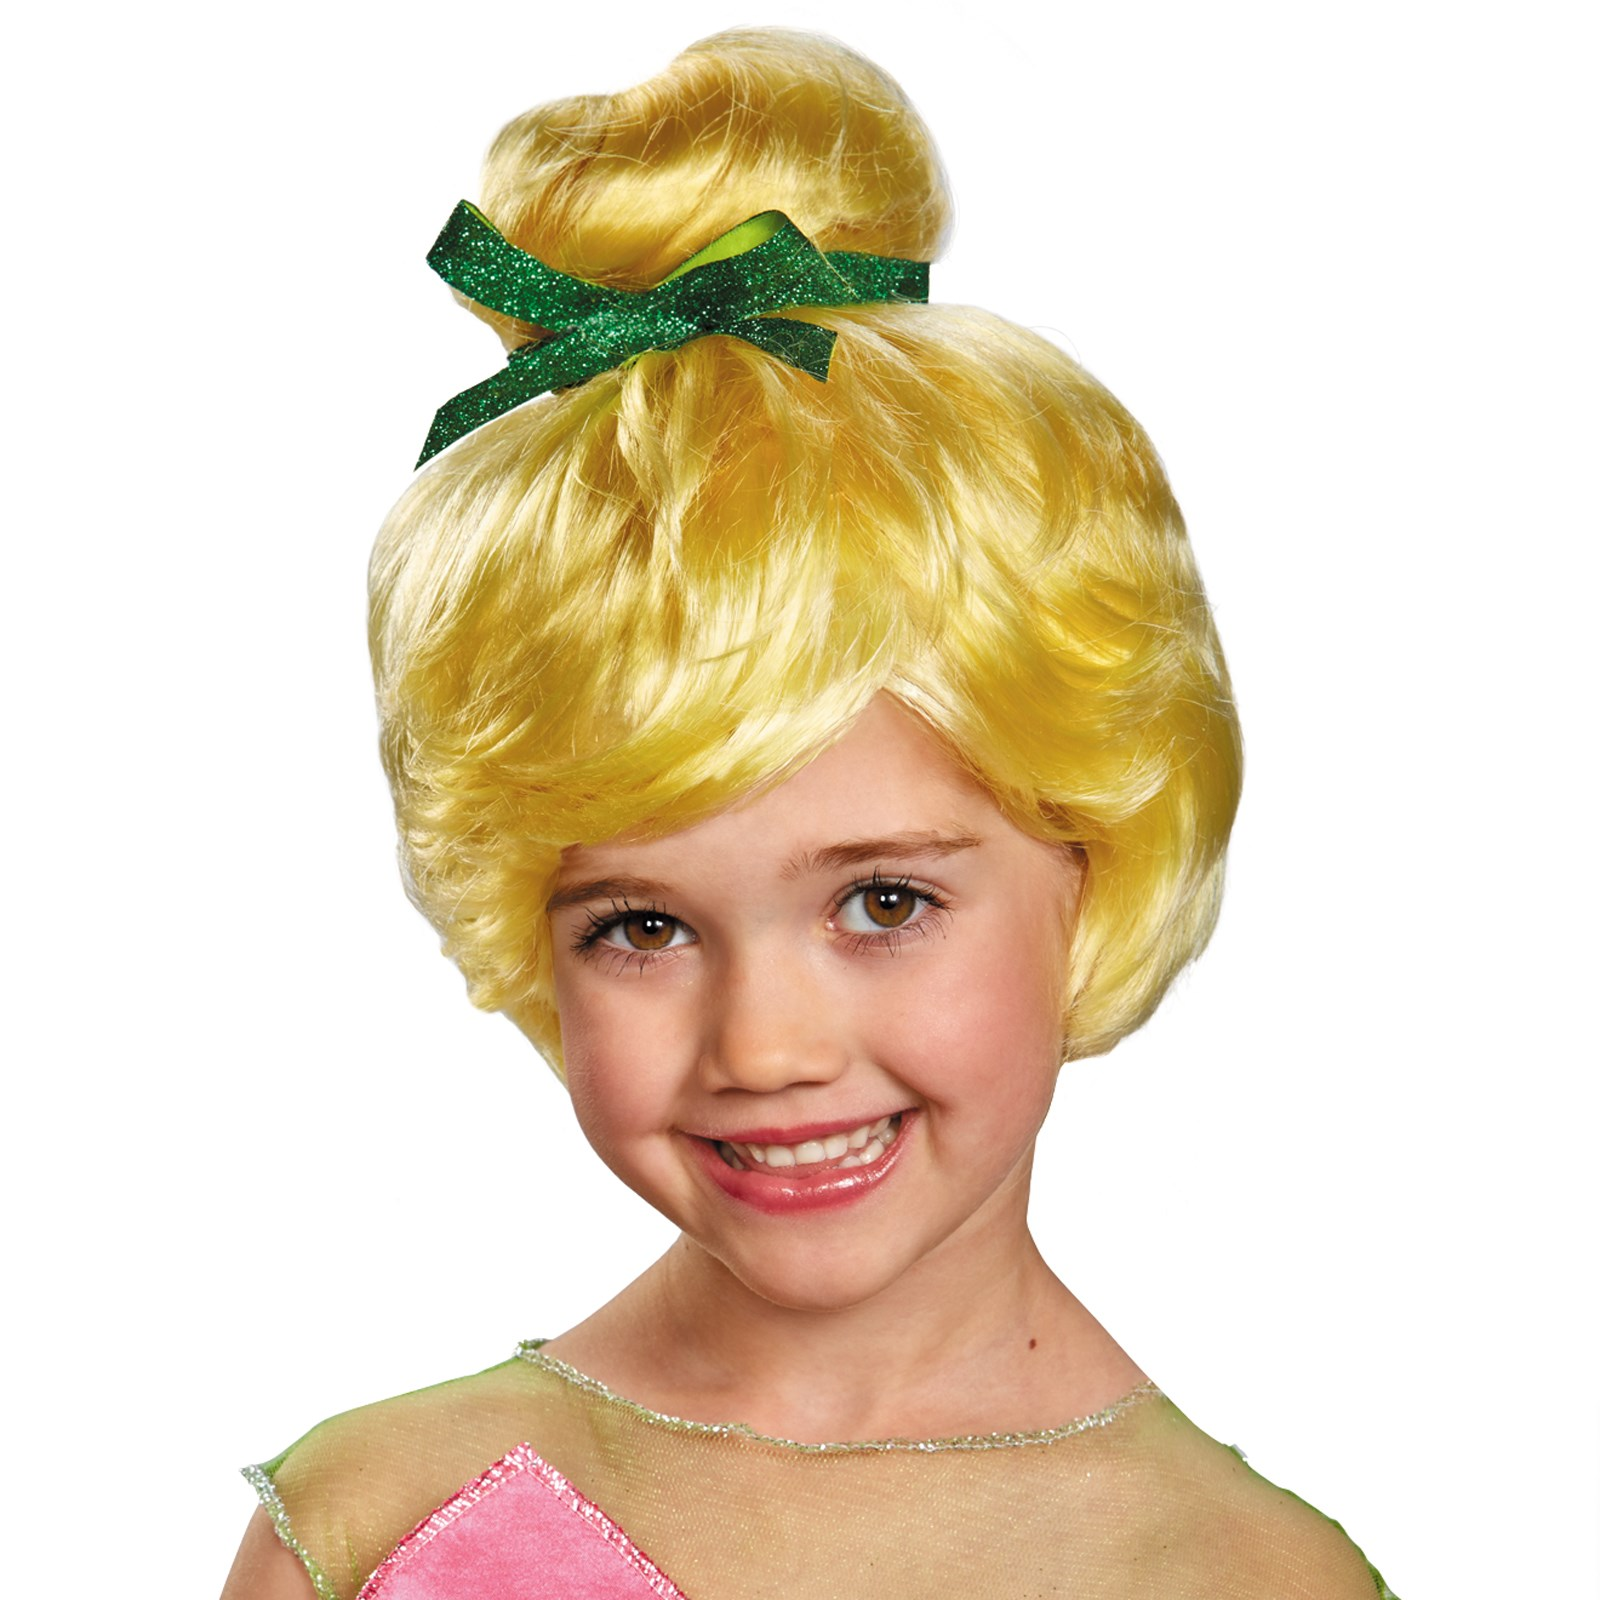 Disney Tinker Bell Kids Wig One-Size